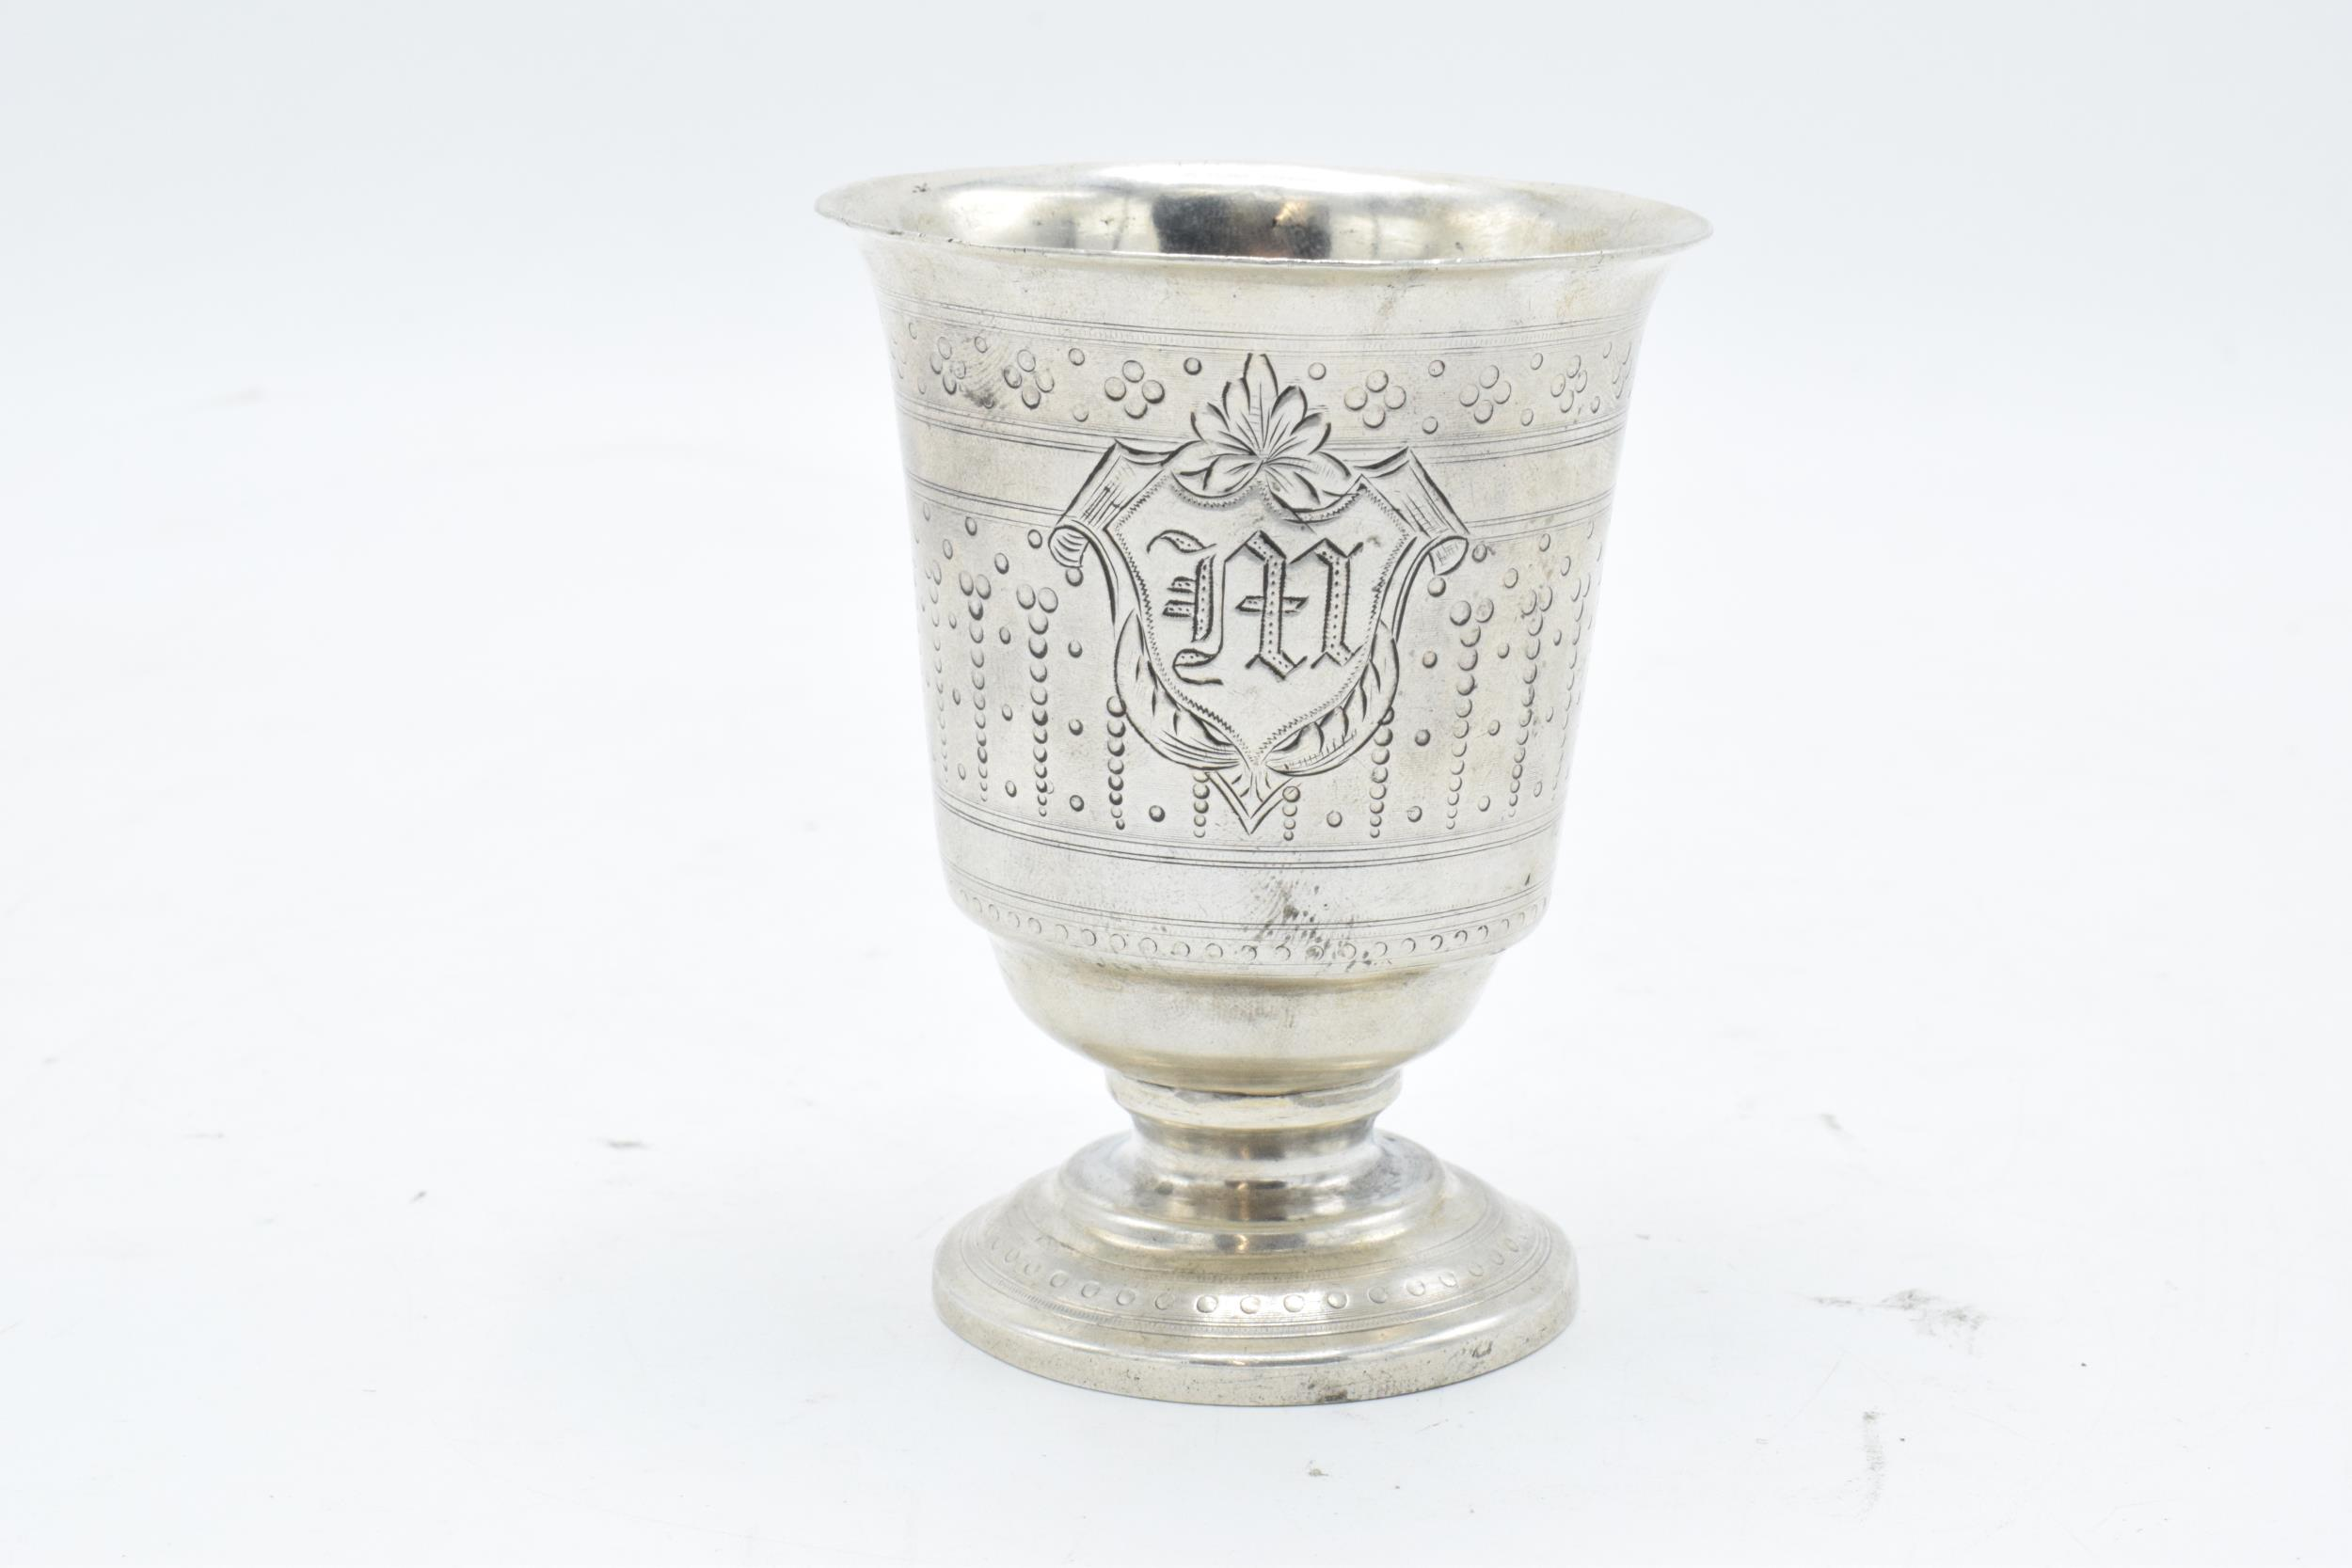 Continental silver footed beaker with engraved decoration. 9cm tall. 63.3 grams.